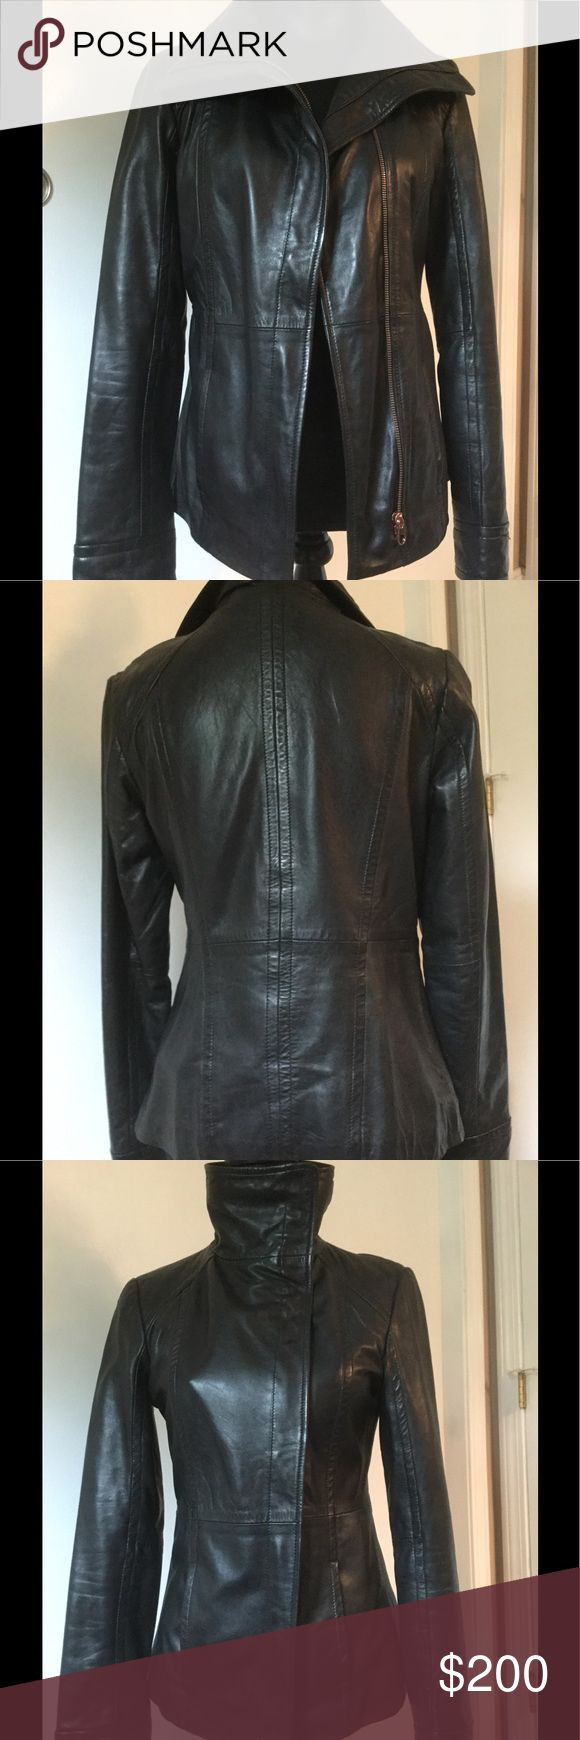 Ted Baker Leather Jacket Slight asymmetrical zip thick soft leather jacket.  Hits just below hip.  Beautiful floral print lining.  Rose gold zipper. Excellent condition. Ted Baker London Jackets & Coats